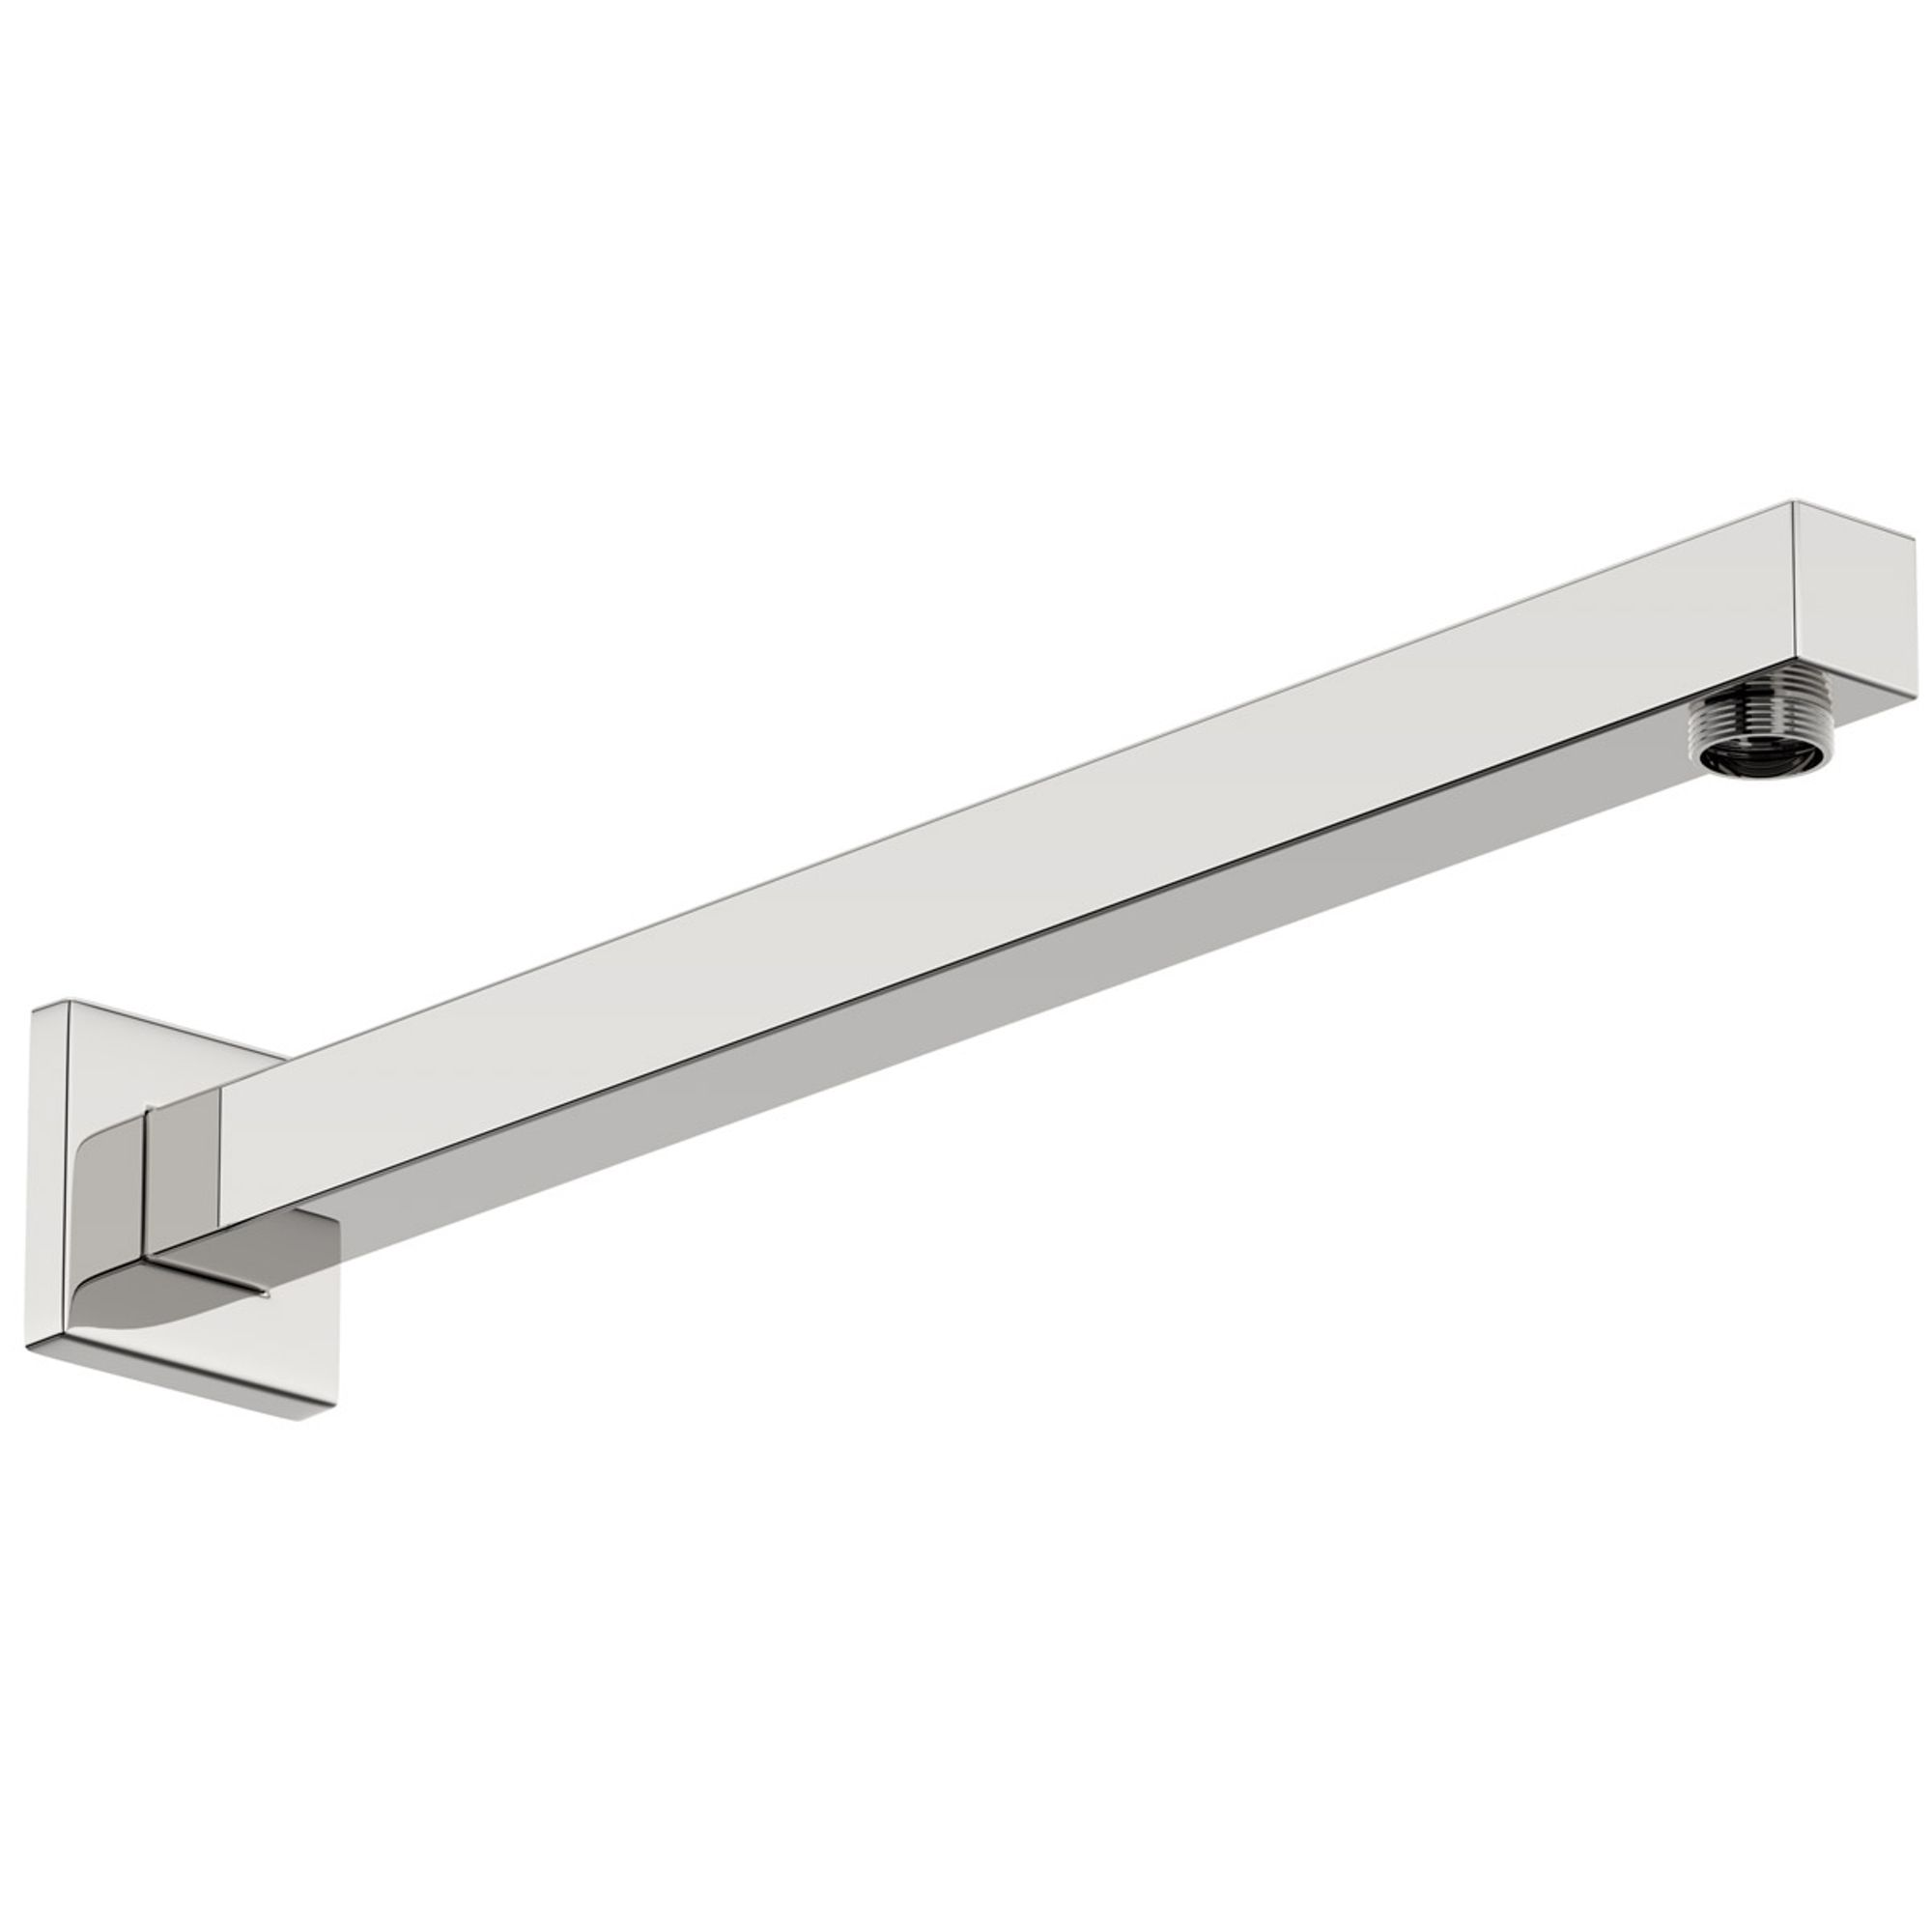 Square Wall Shower Arm 400mm - Chrome Finish